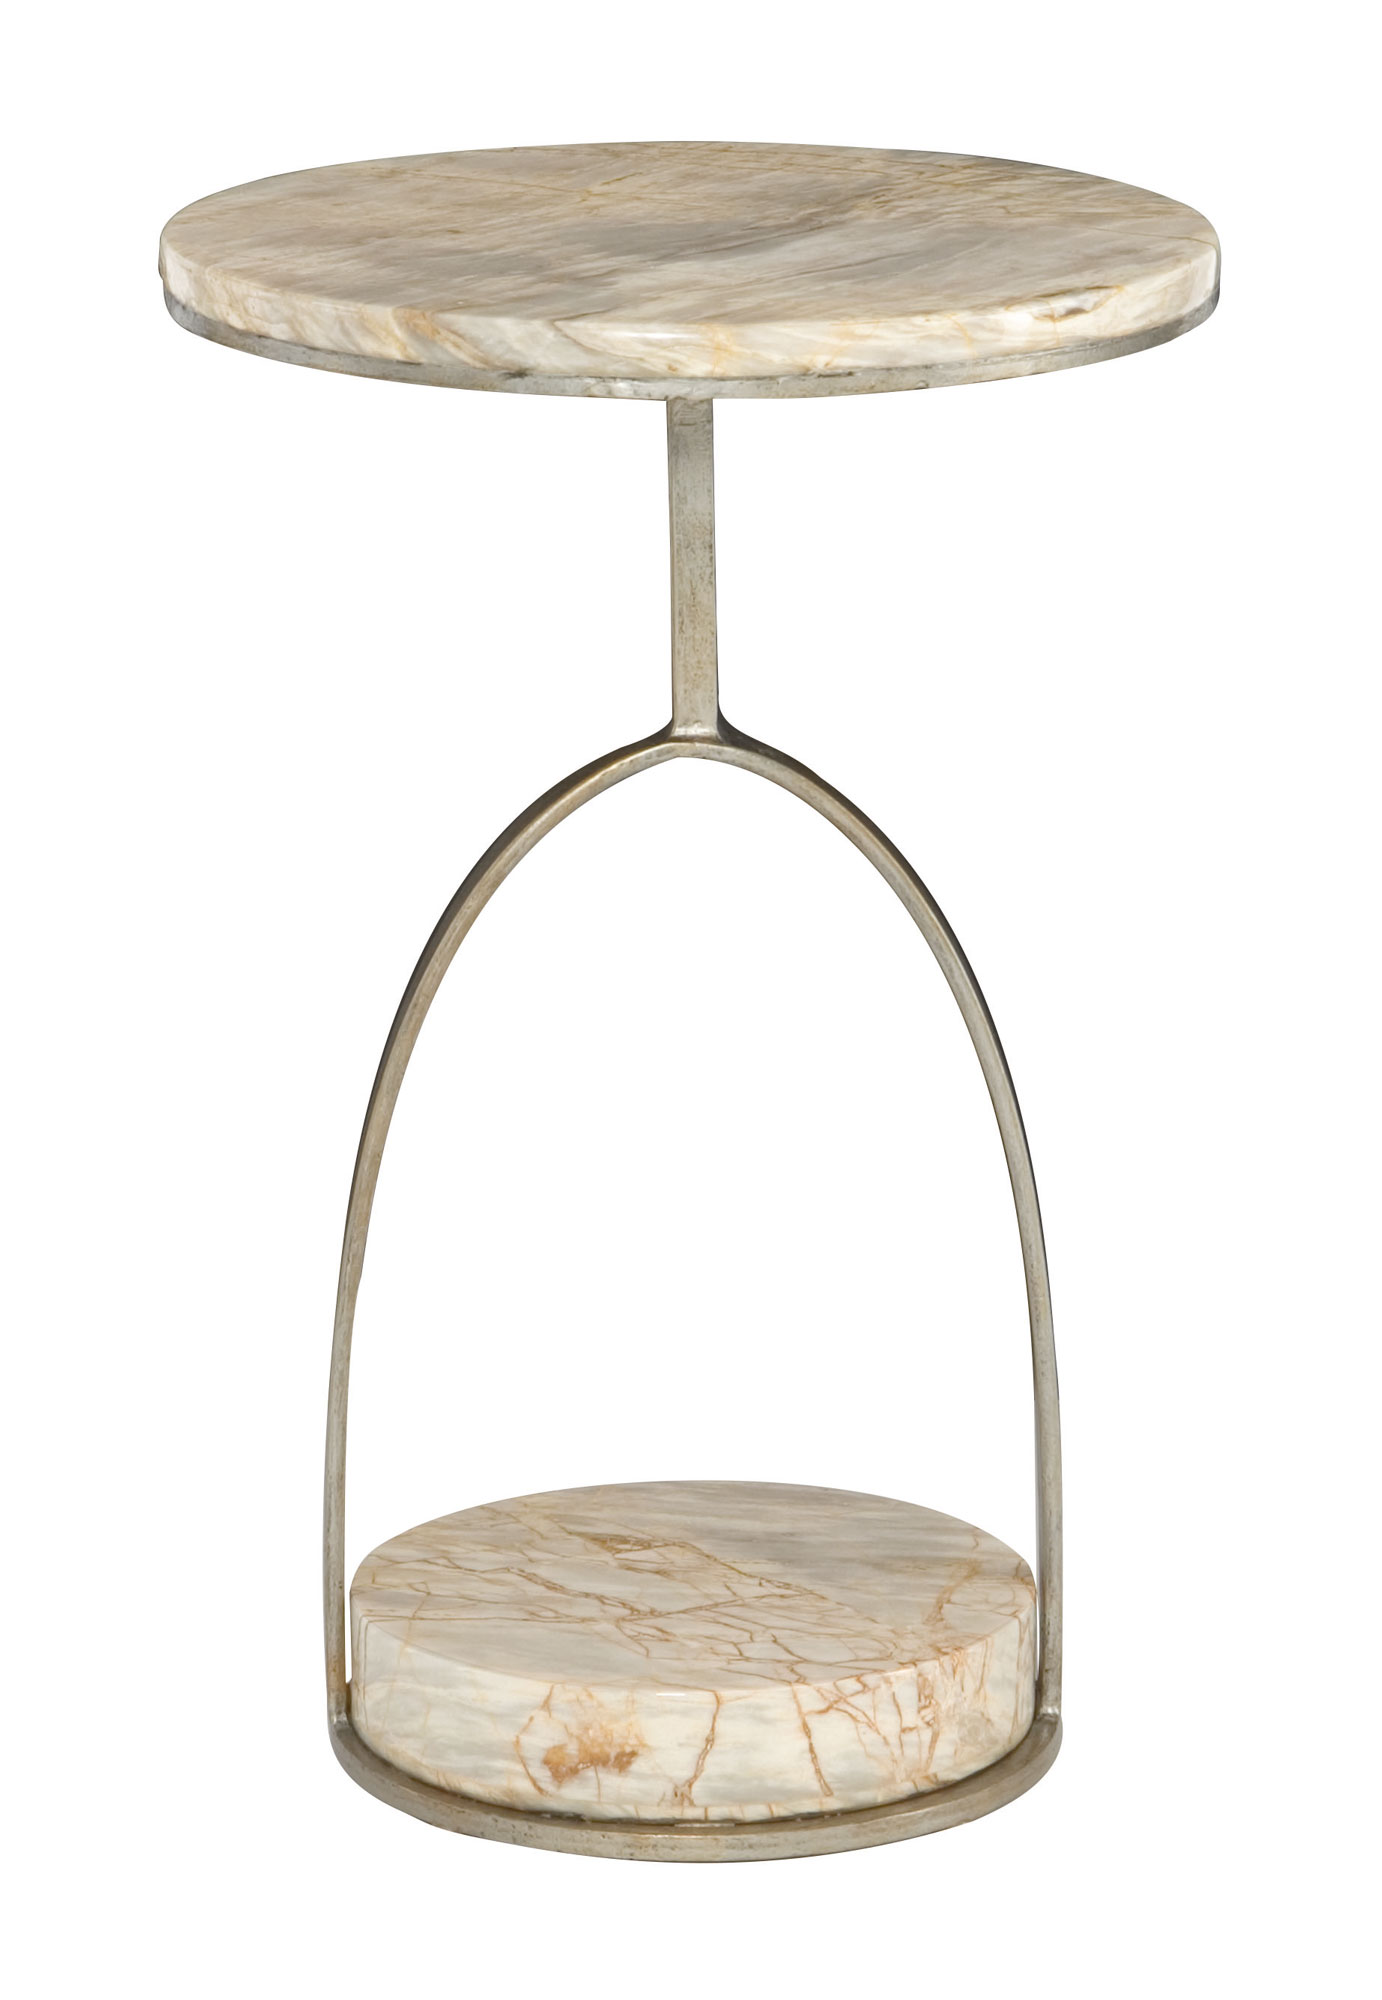 Round Chairside Table Chairside Table Jofran Mission Oak Chairside Table With 1 Drawer